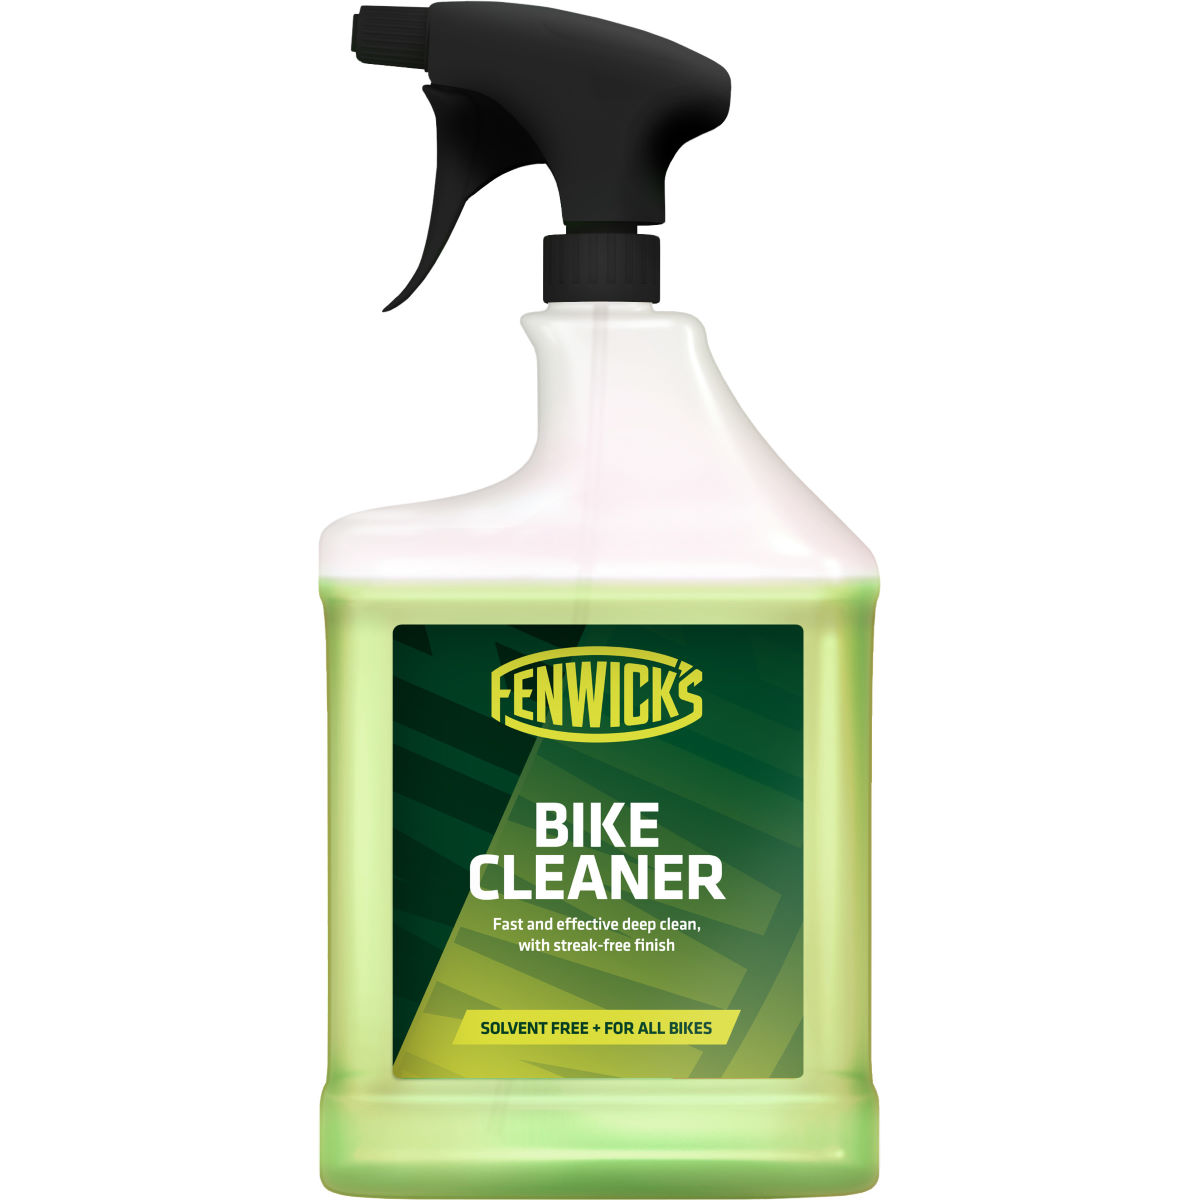 Fenwicks FS-10 Bike Cleaner - Productos de limpieza